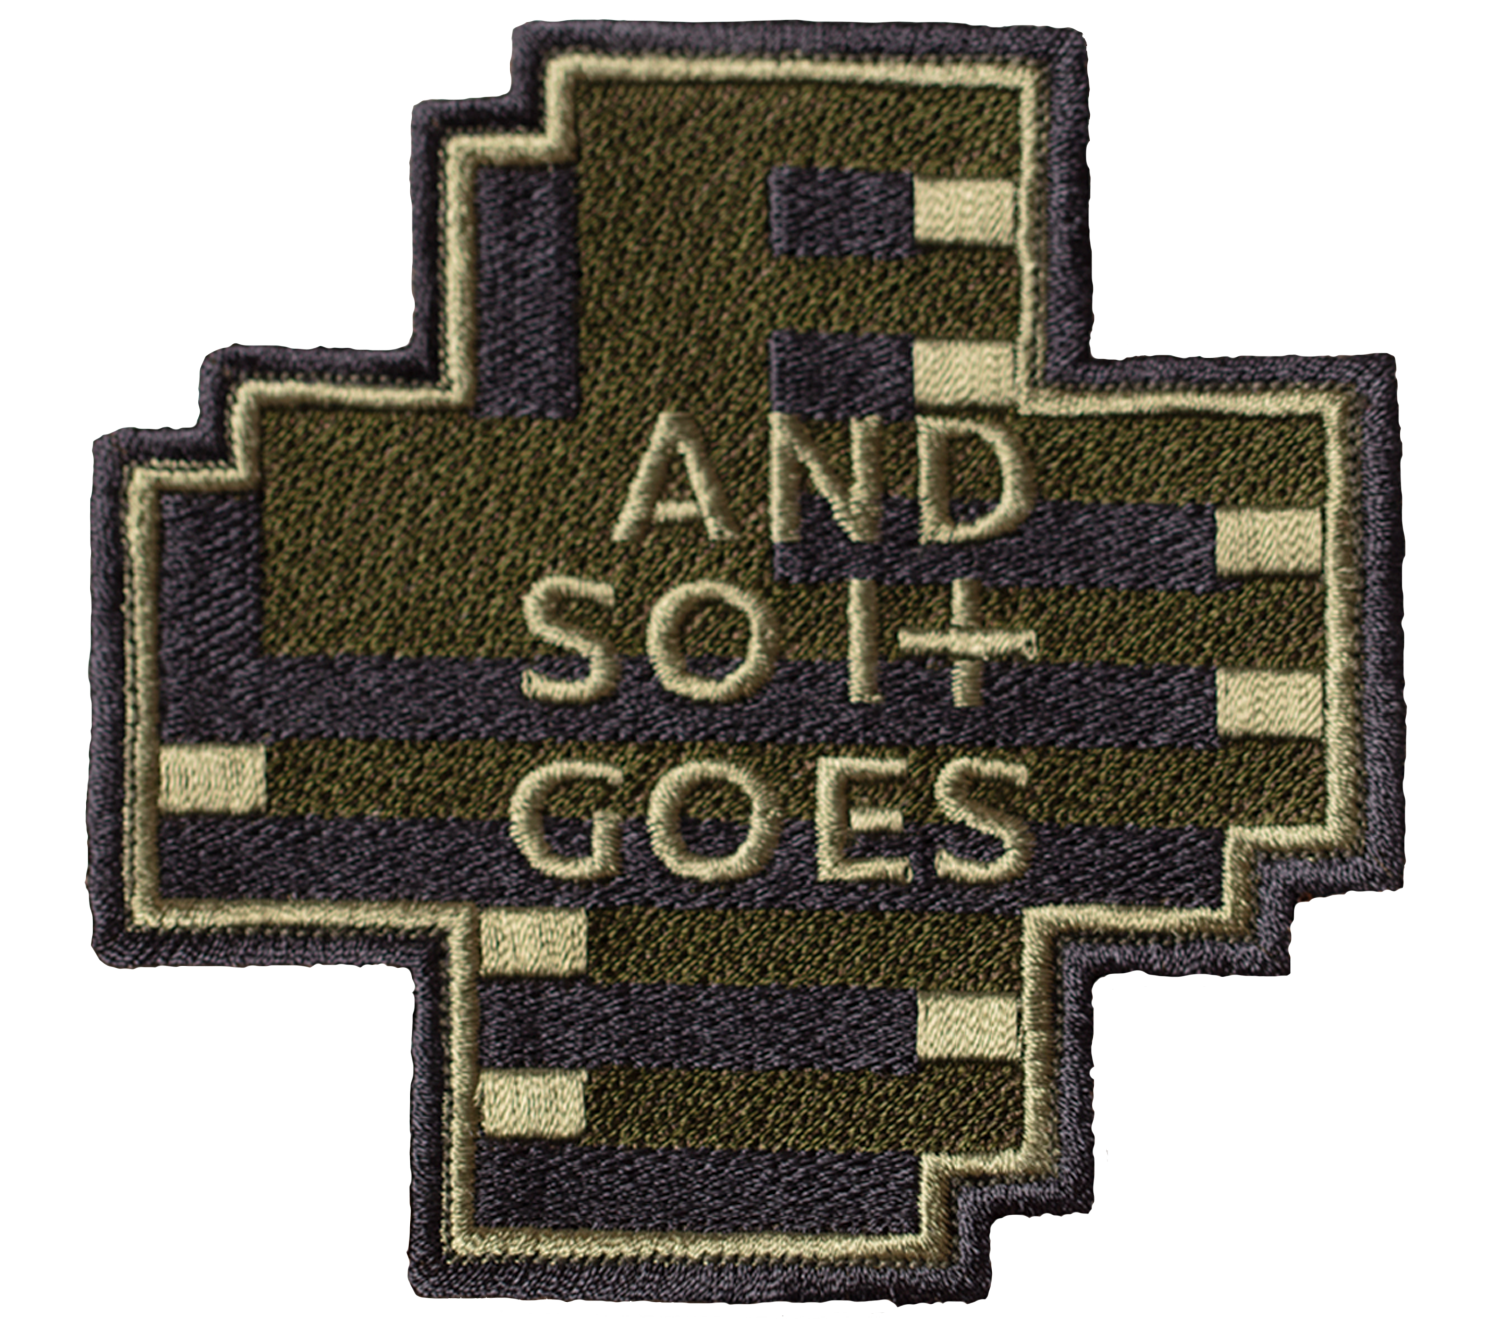 09-NJ-andsoitgoes-patch.png